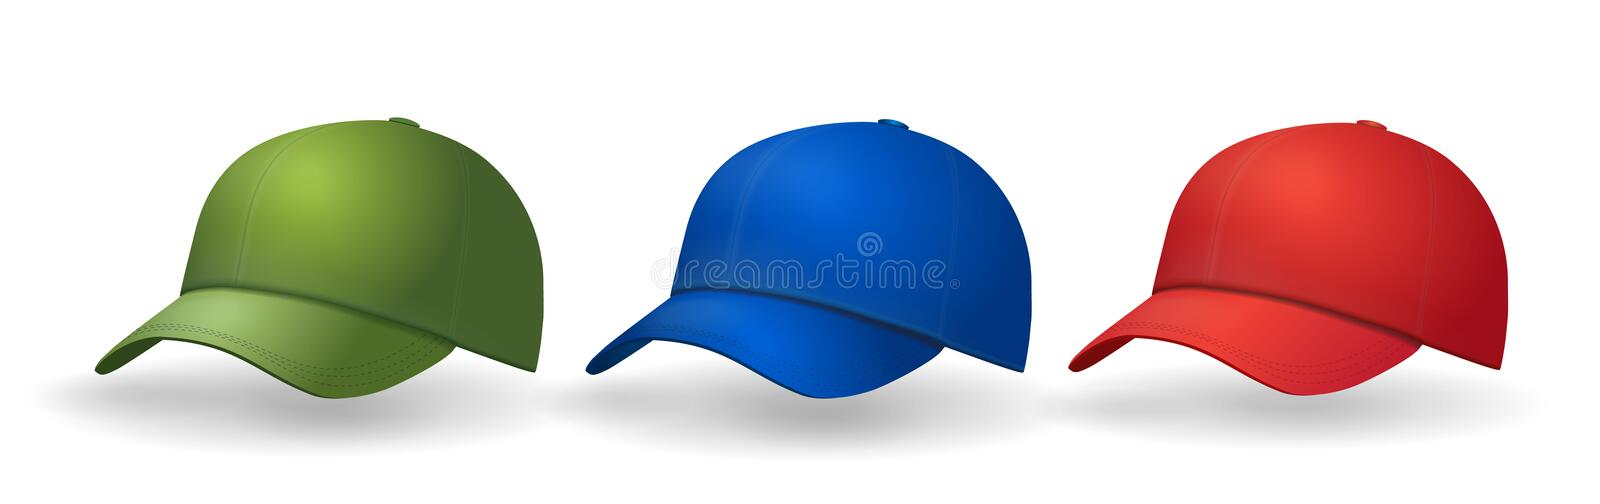 Baseball caps set Realistic hat collection royalty free illustration